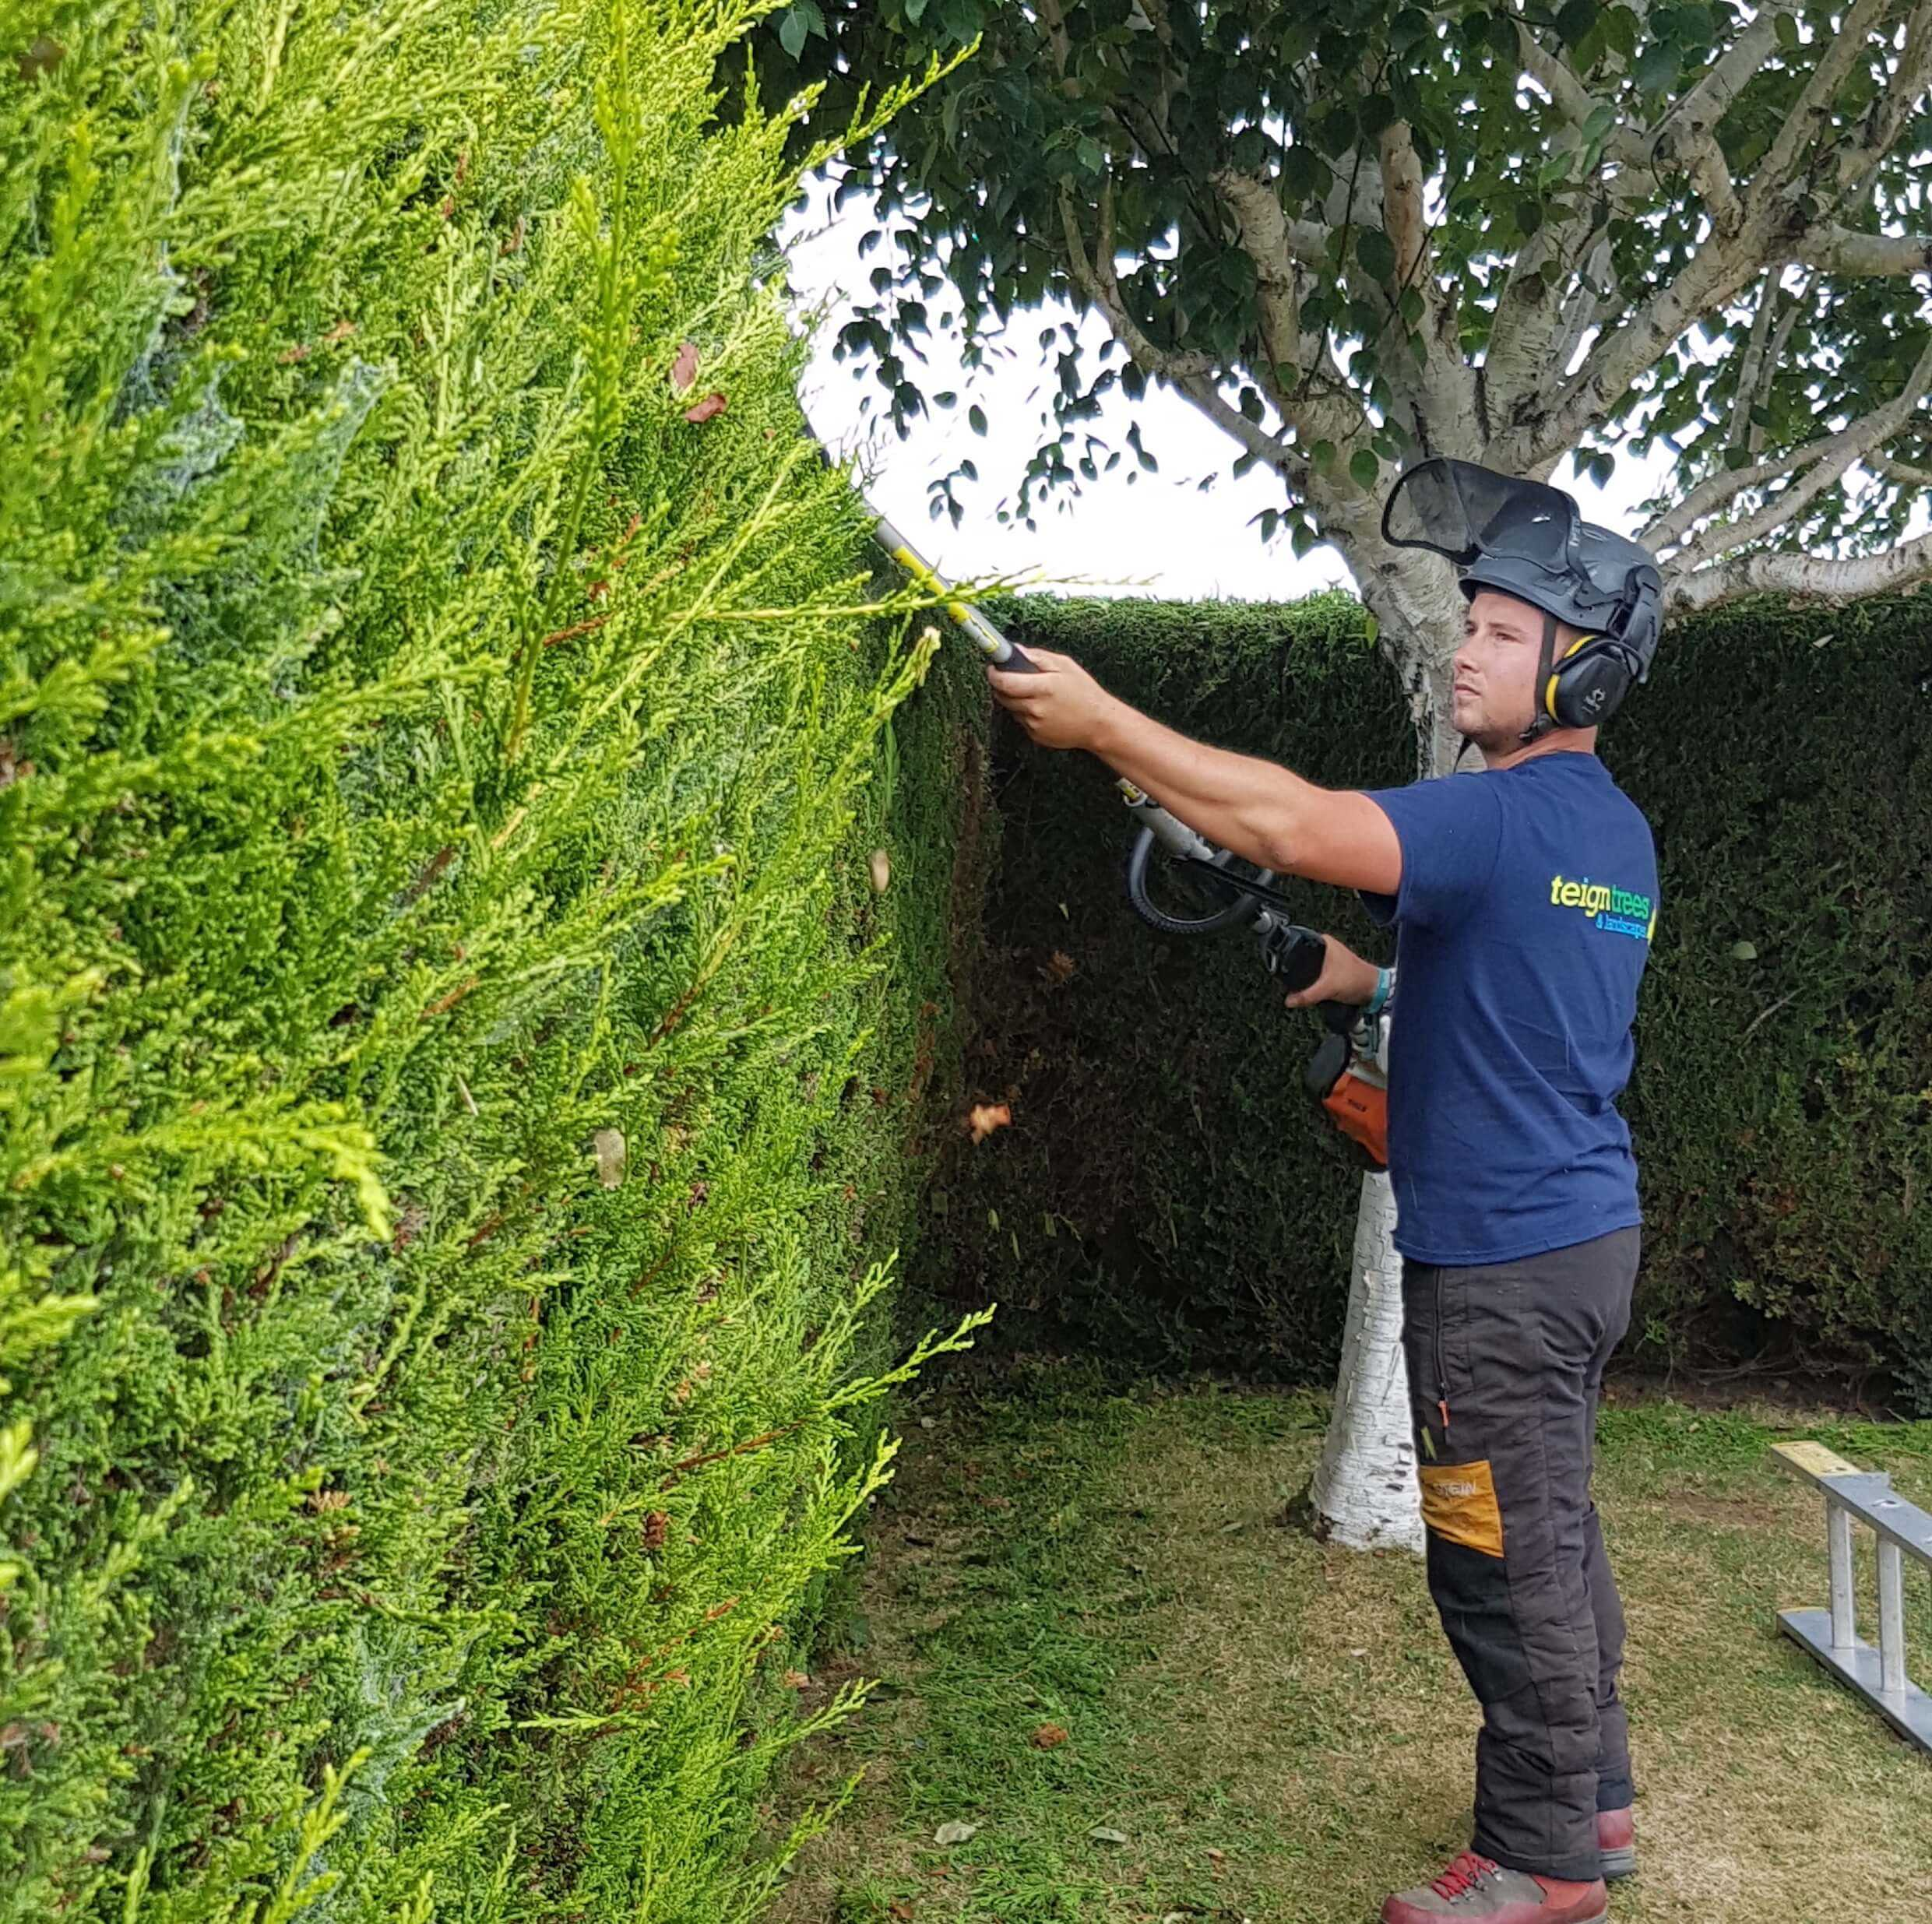 Uncategorized Hedge Trim hedge trimming services teign trees neat trouble free hedges need regular cutting to keep them tidy and manageable taming unruly is one of our specialties youll be amazed